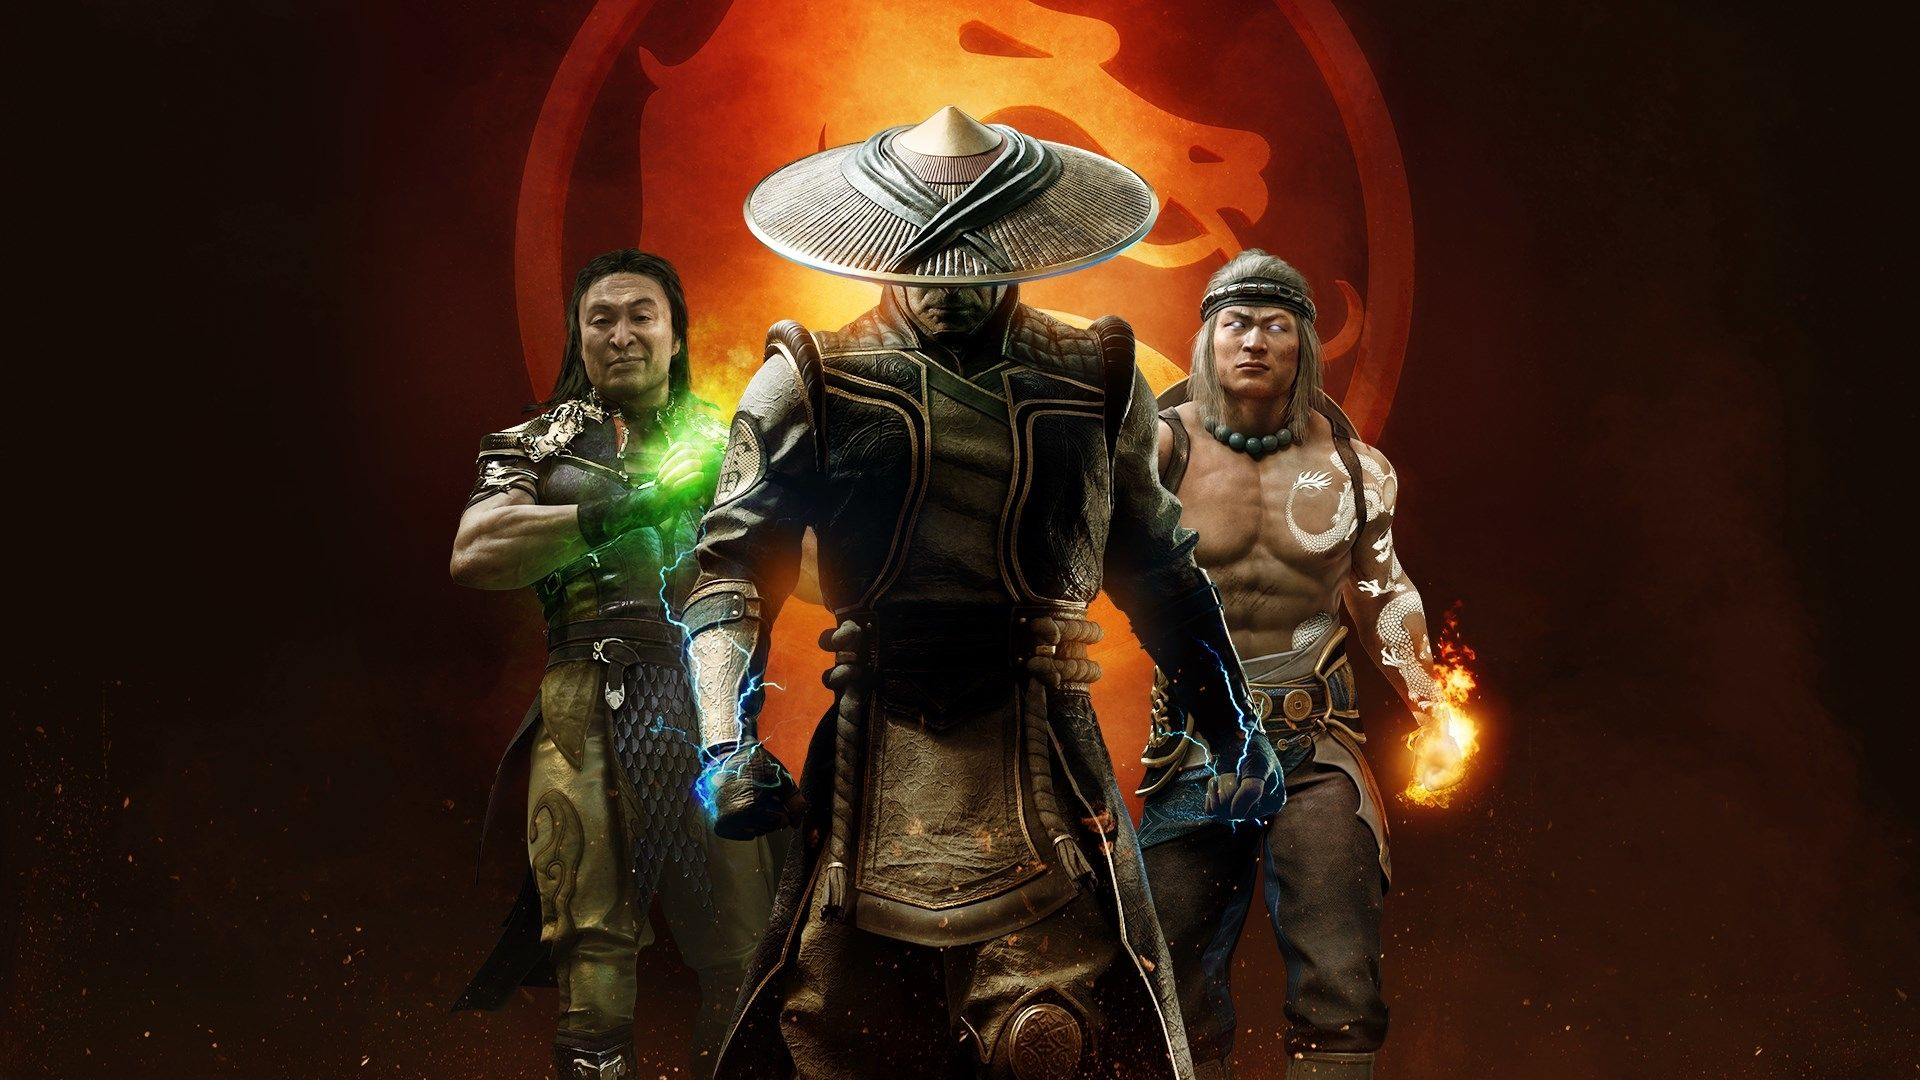 /the-new-mortal-kombat-movie-in-2021-5-characters-we-want-to-see-5d1o33dt feature image